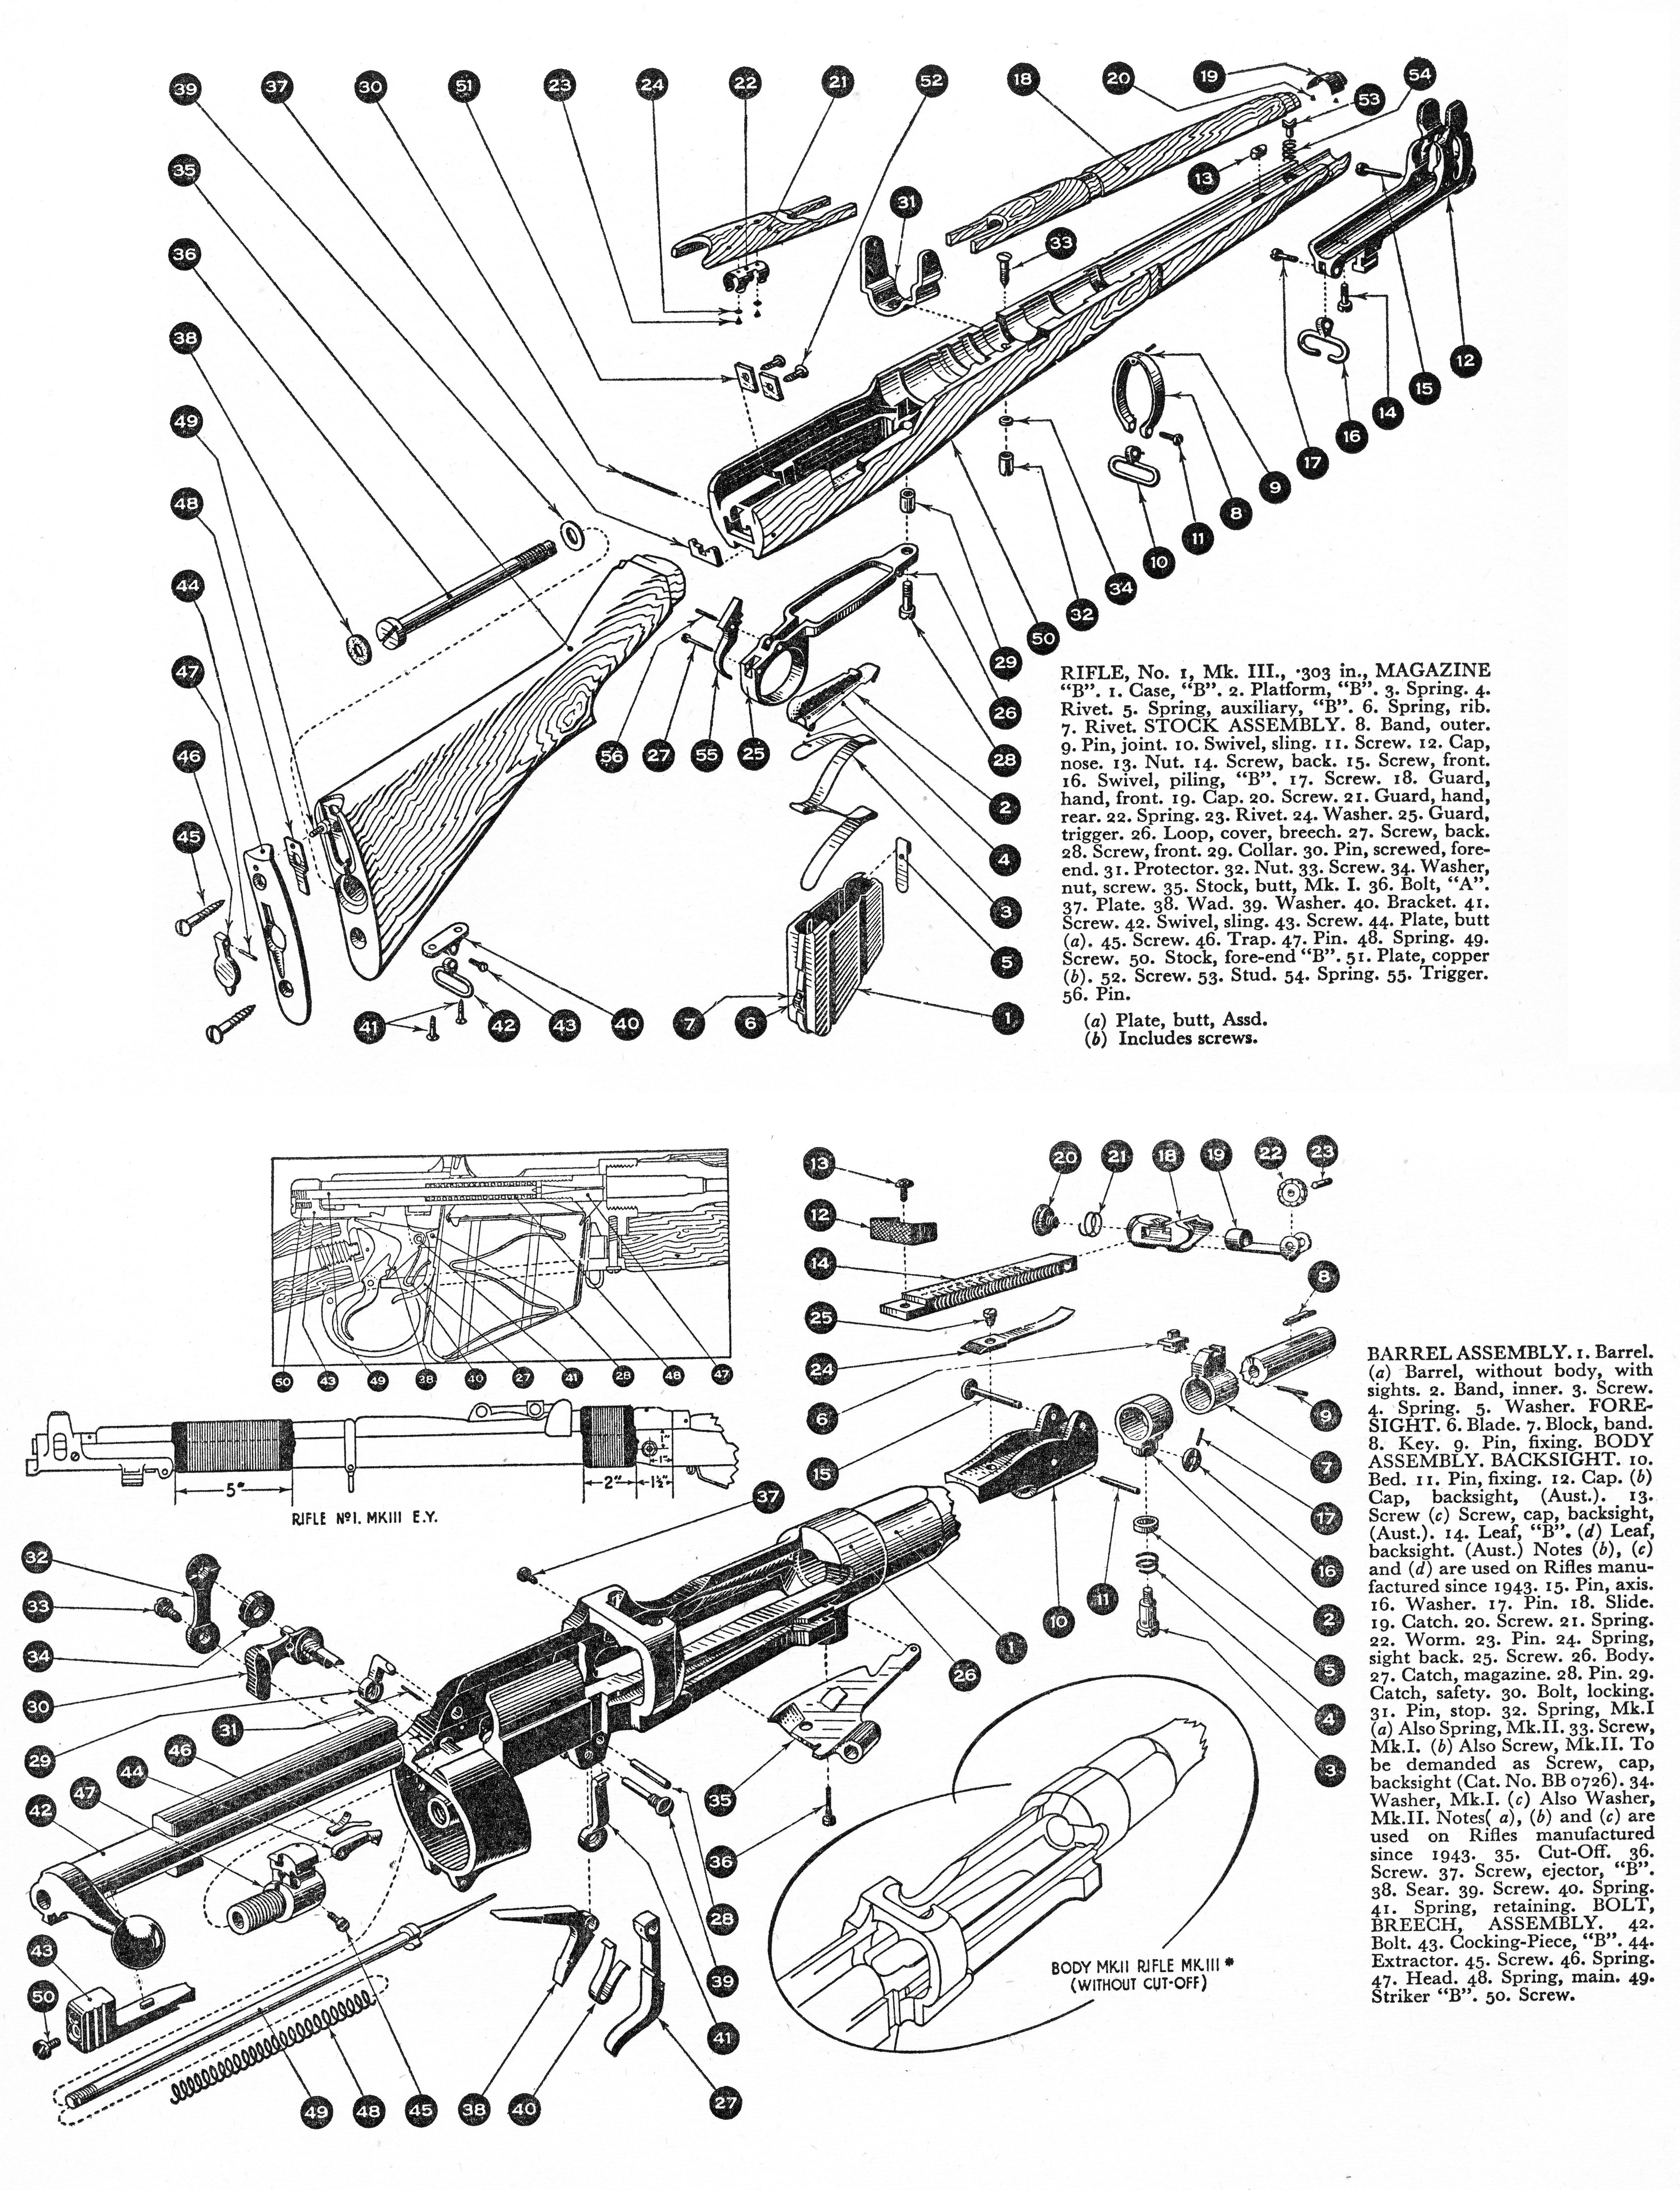 detailed parts diagram of rifle no 1 mkiii smle 303in with cut off  [ 4711 x 6142 Pixel ]